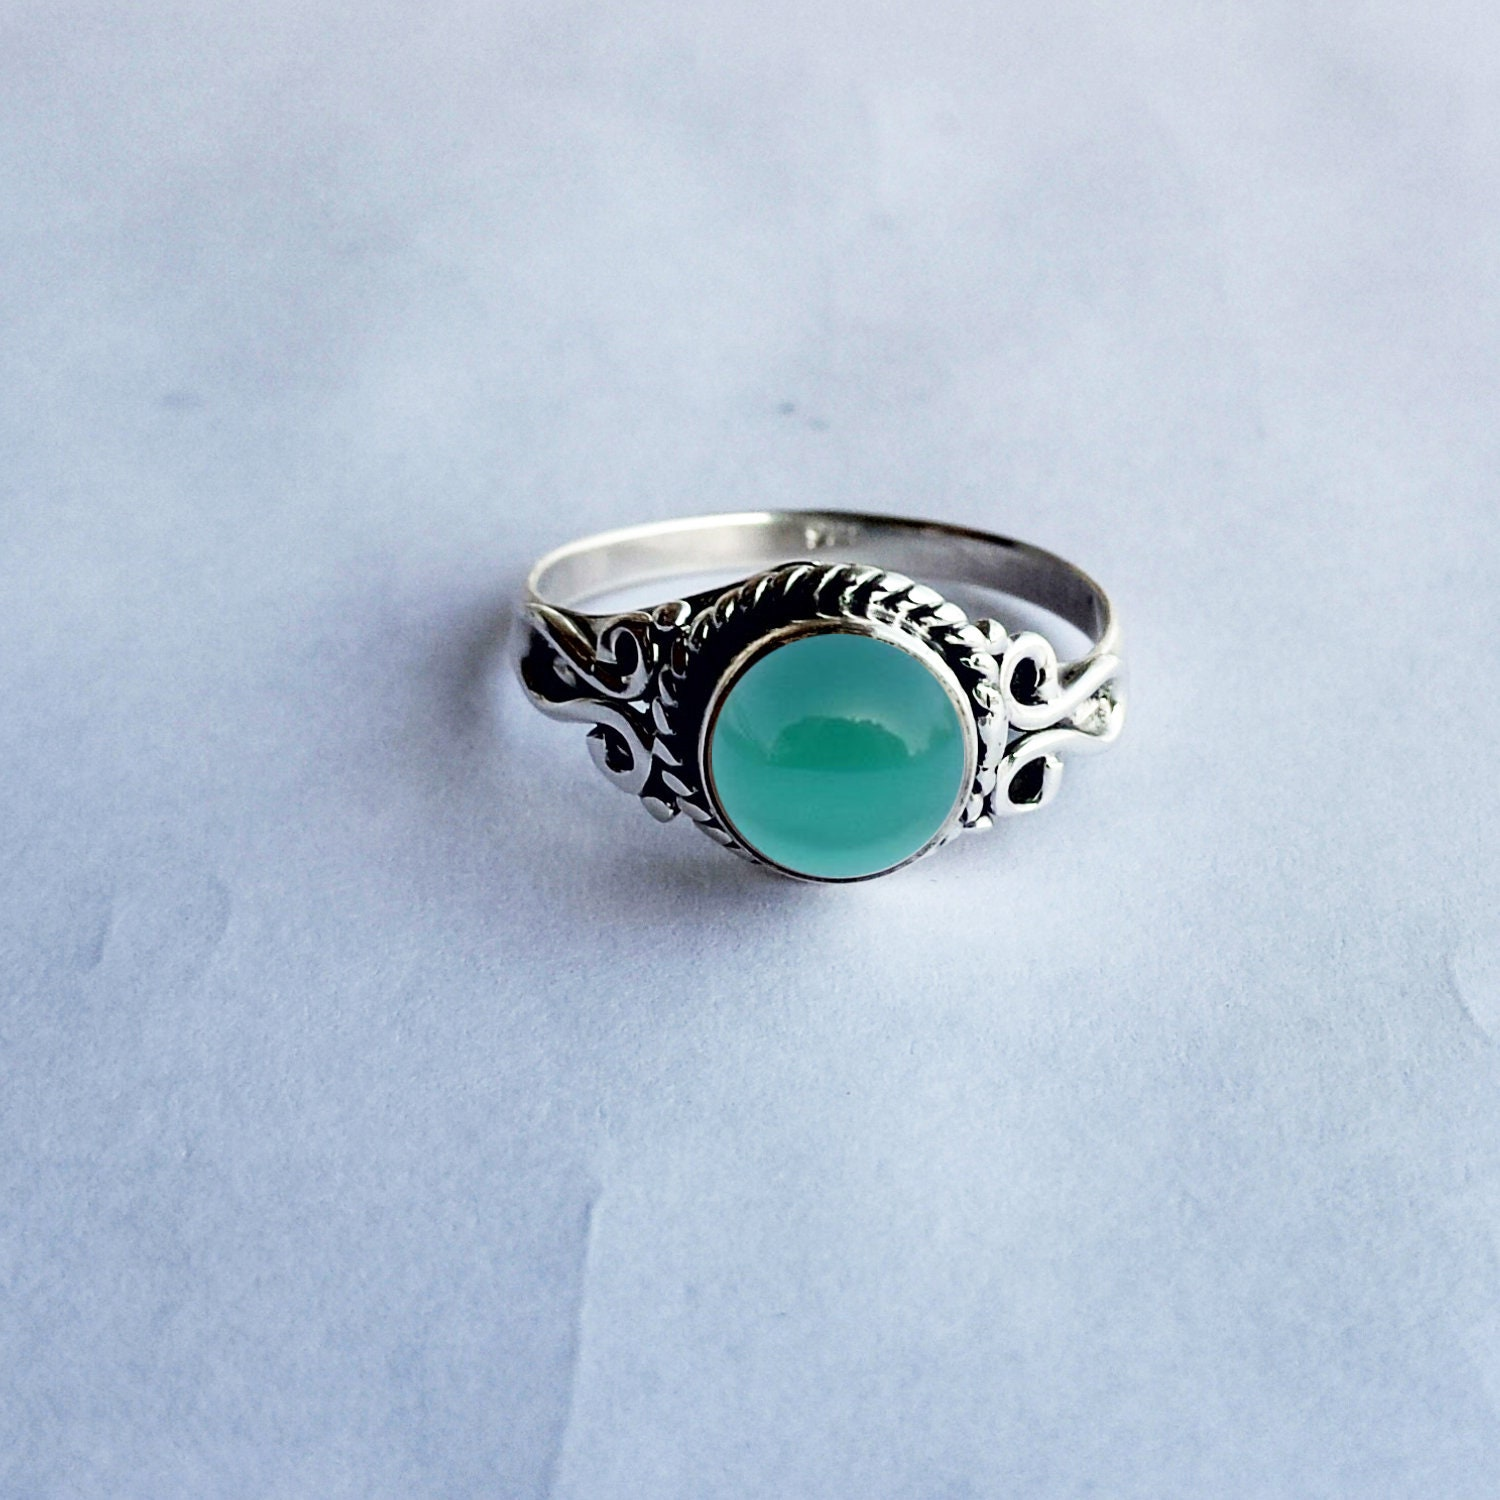 Details about  /925 Solid Sterling Silver Natural Green Onyx Handmade Fine Ring Women RS-1246